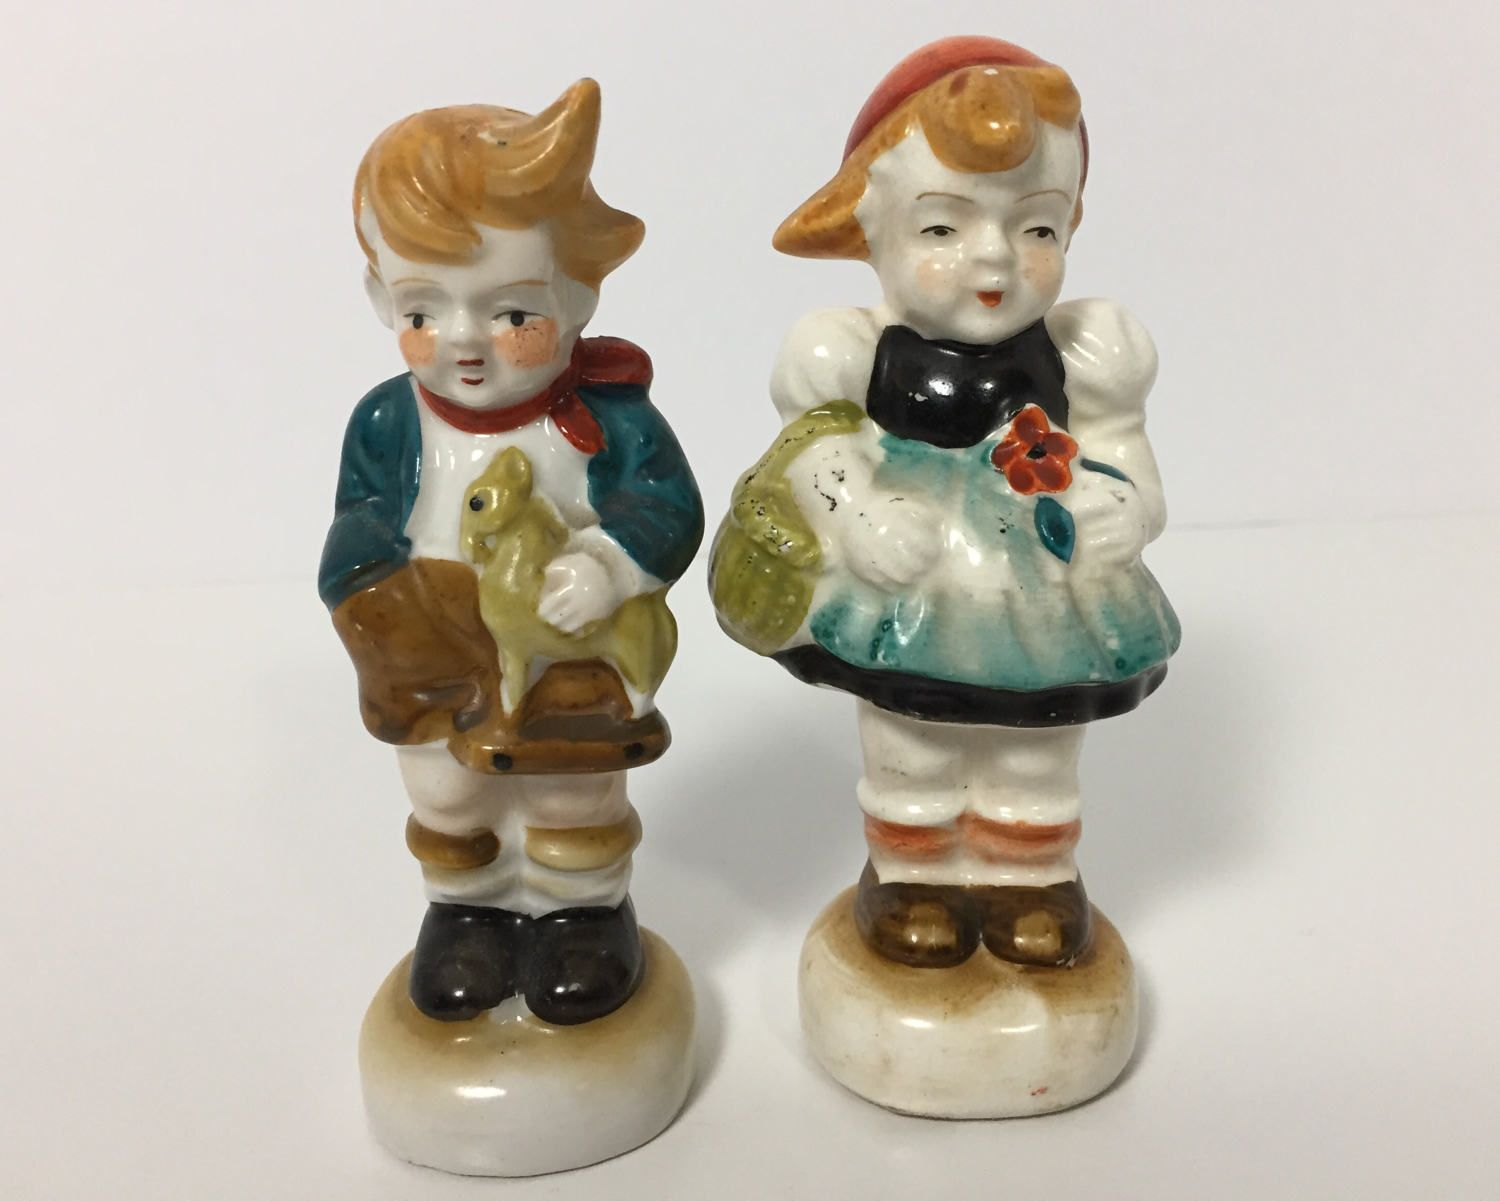 00233062a63b5 Vintage Novelty Little Boy and Girl Salt and Pepper Shakers - Made in  Occupied Japan Figural Shakers by BagBagSydVintage on Etsy